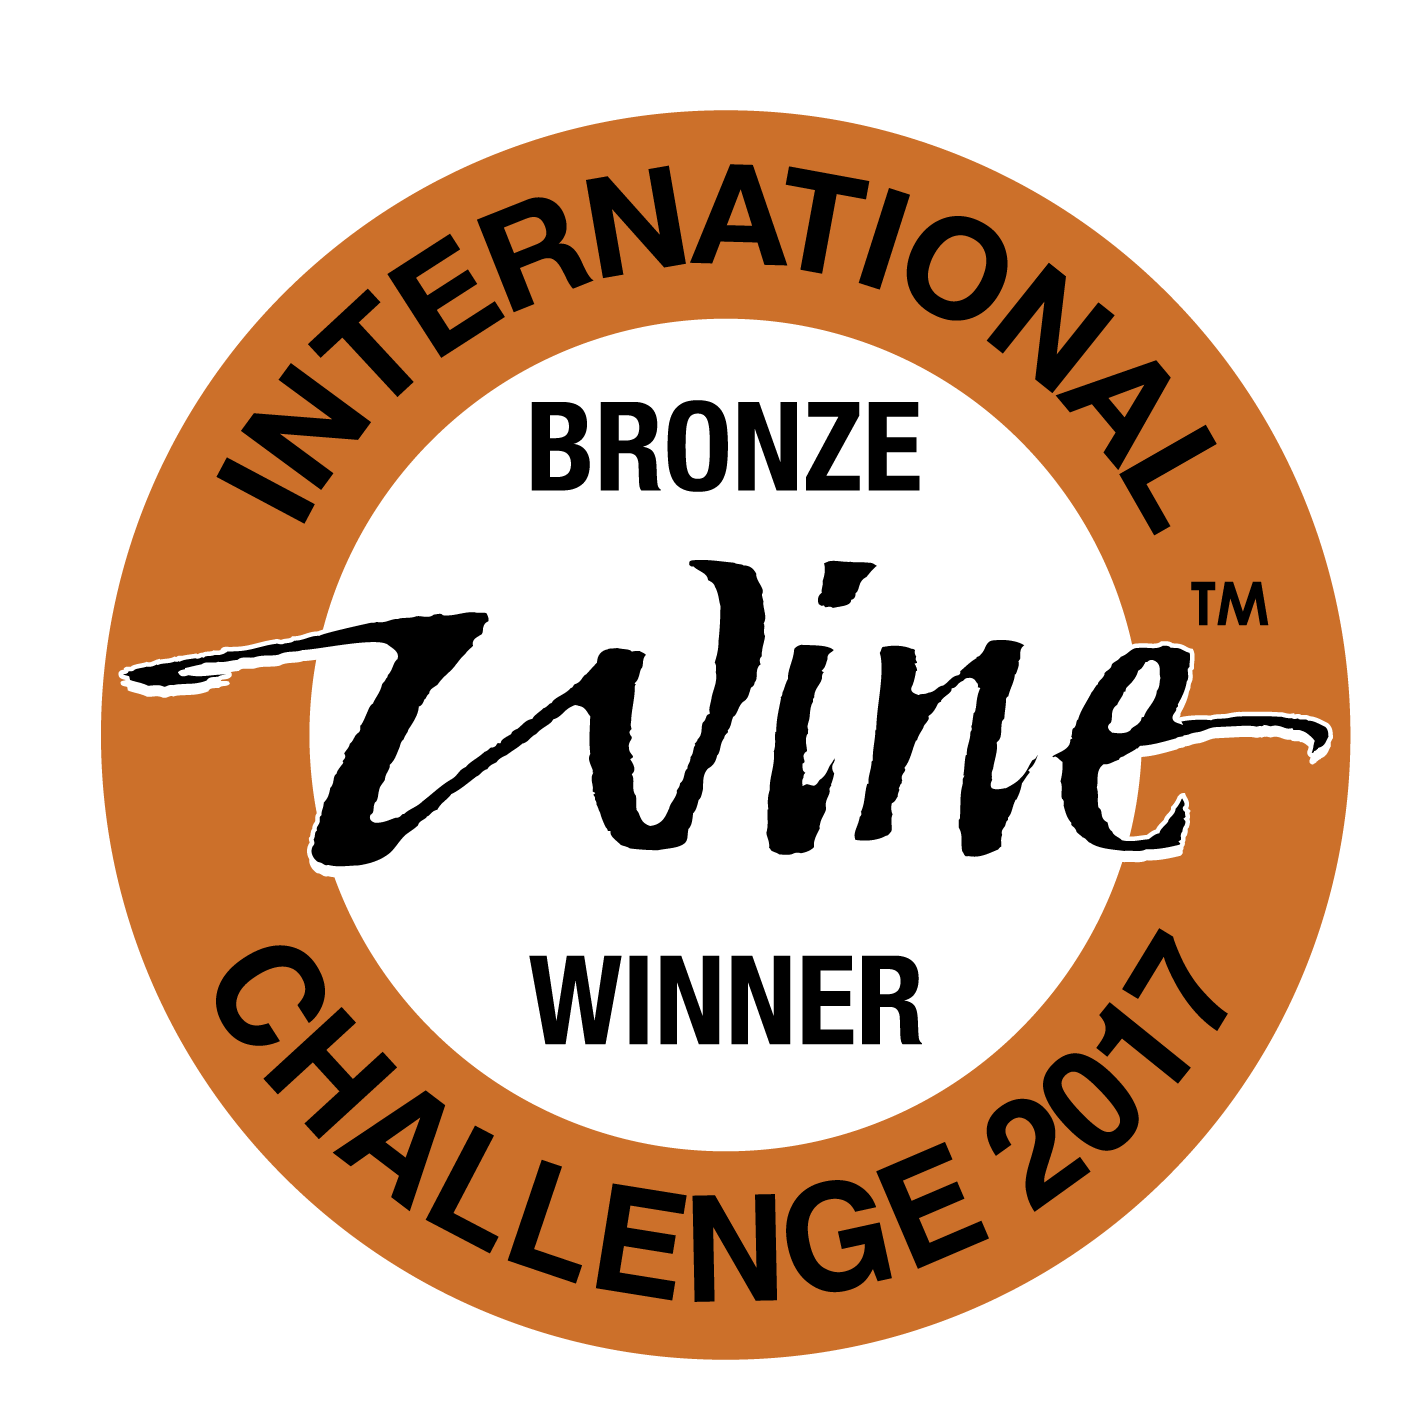 IWC International Wine Challenge 2017 Medalha de Bronze